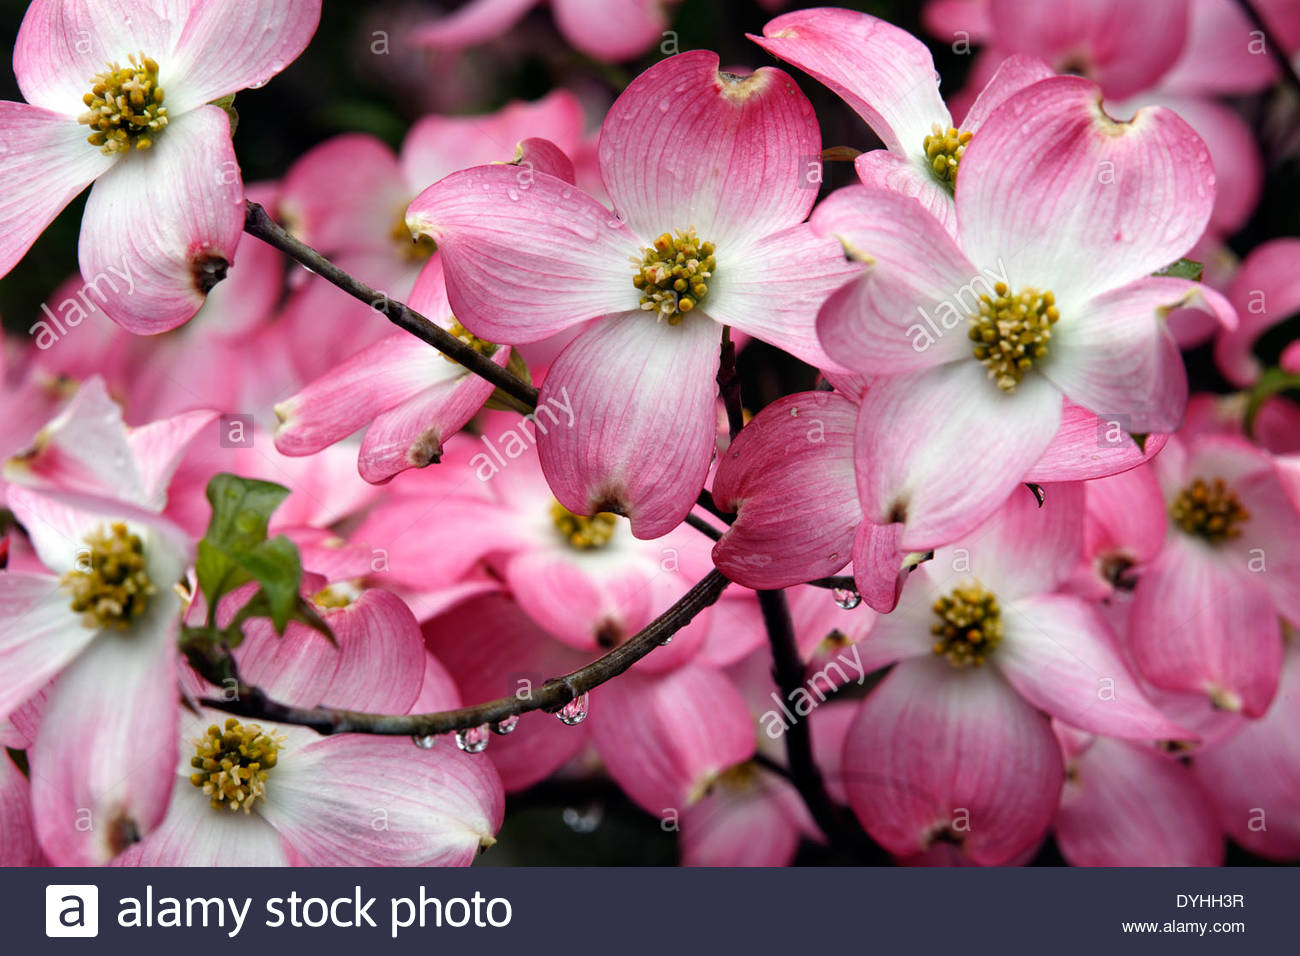 Pink Dogwood Flowers Stock Photos Pink Dogwood Flowers Stock